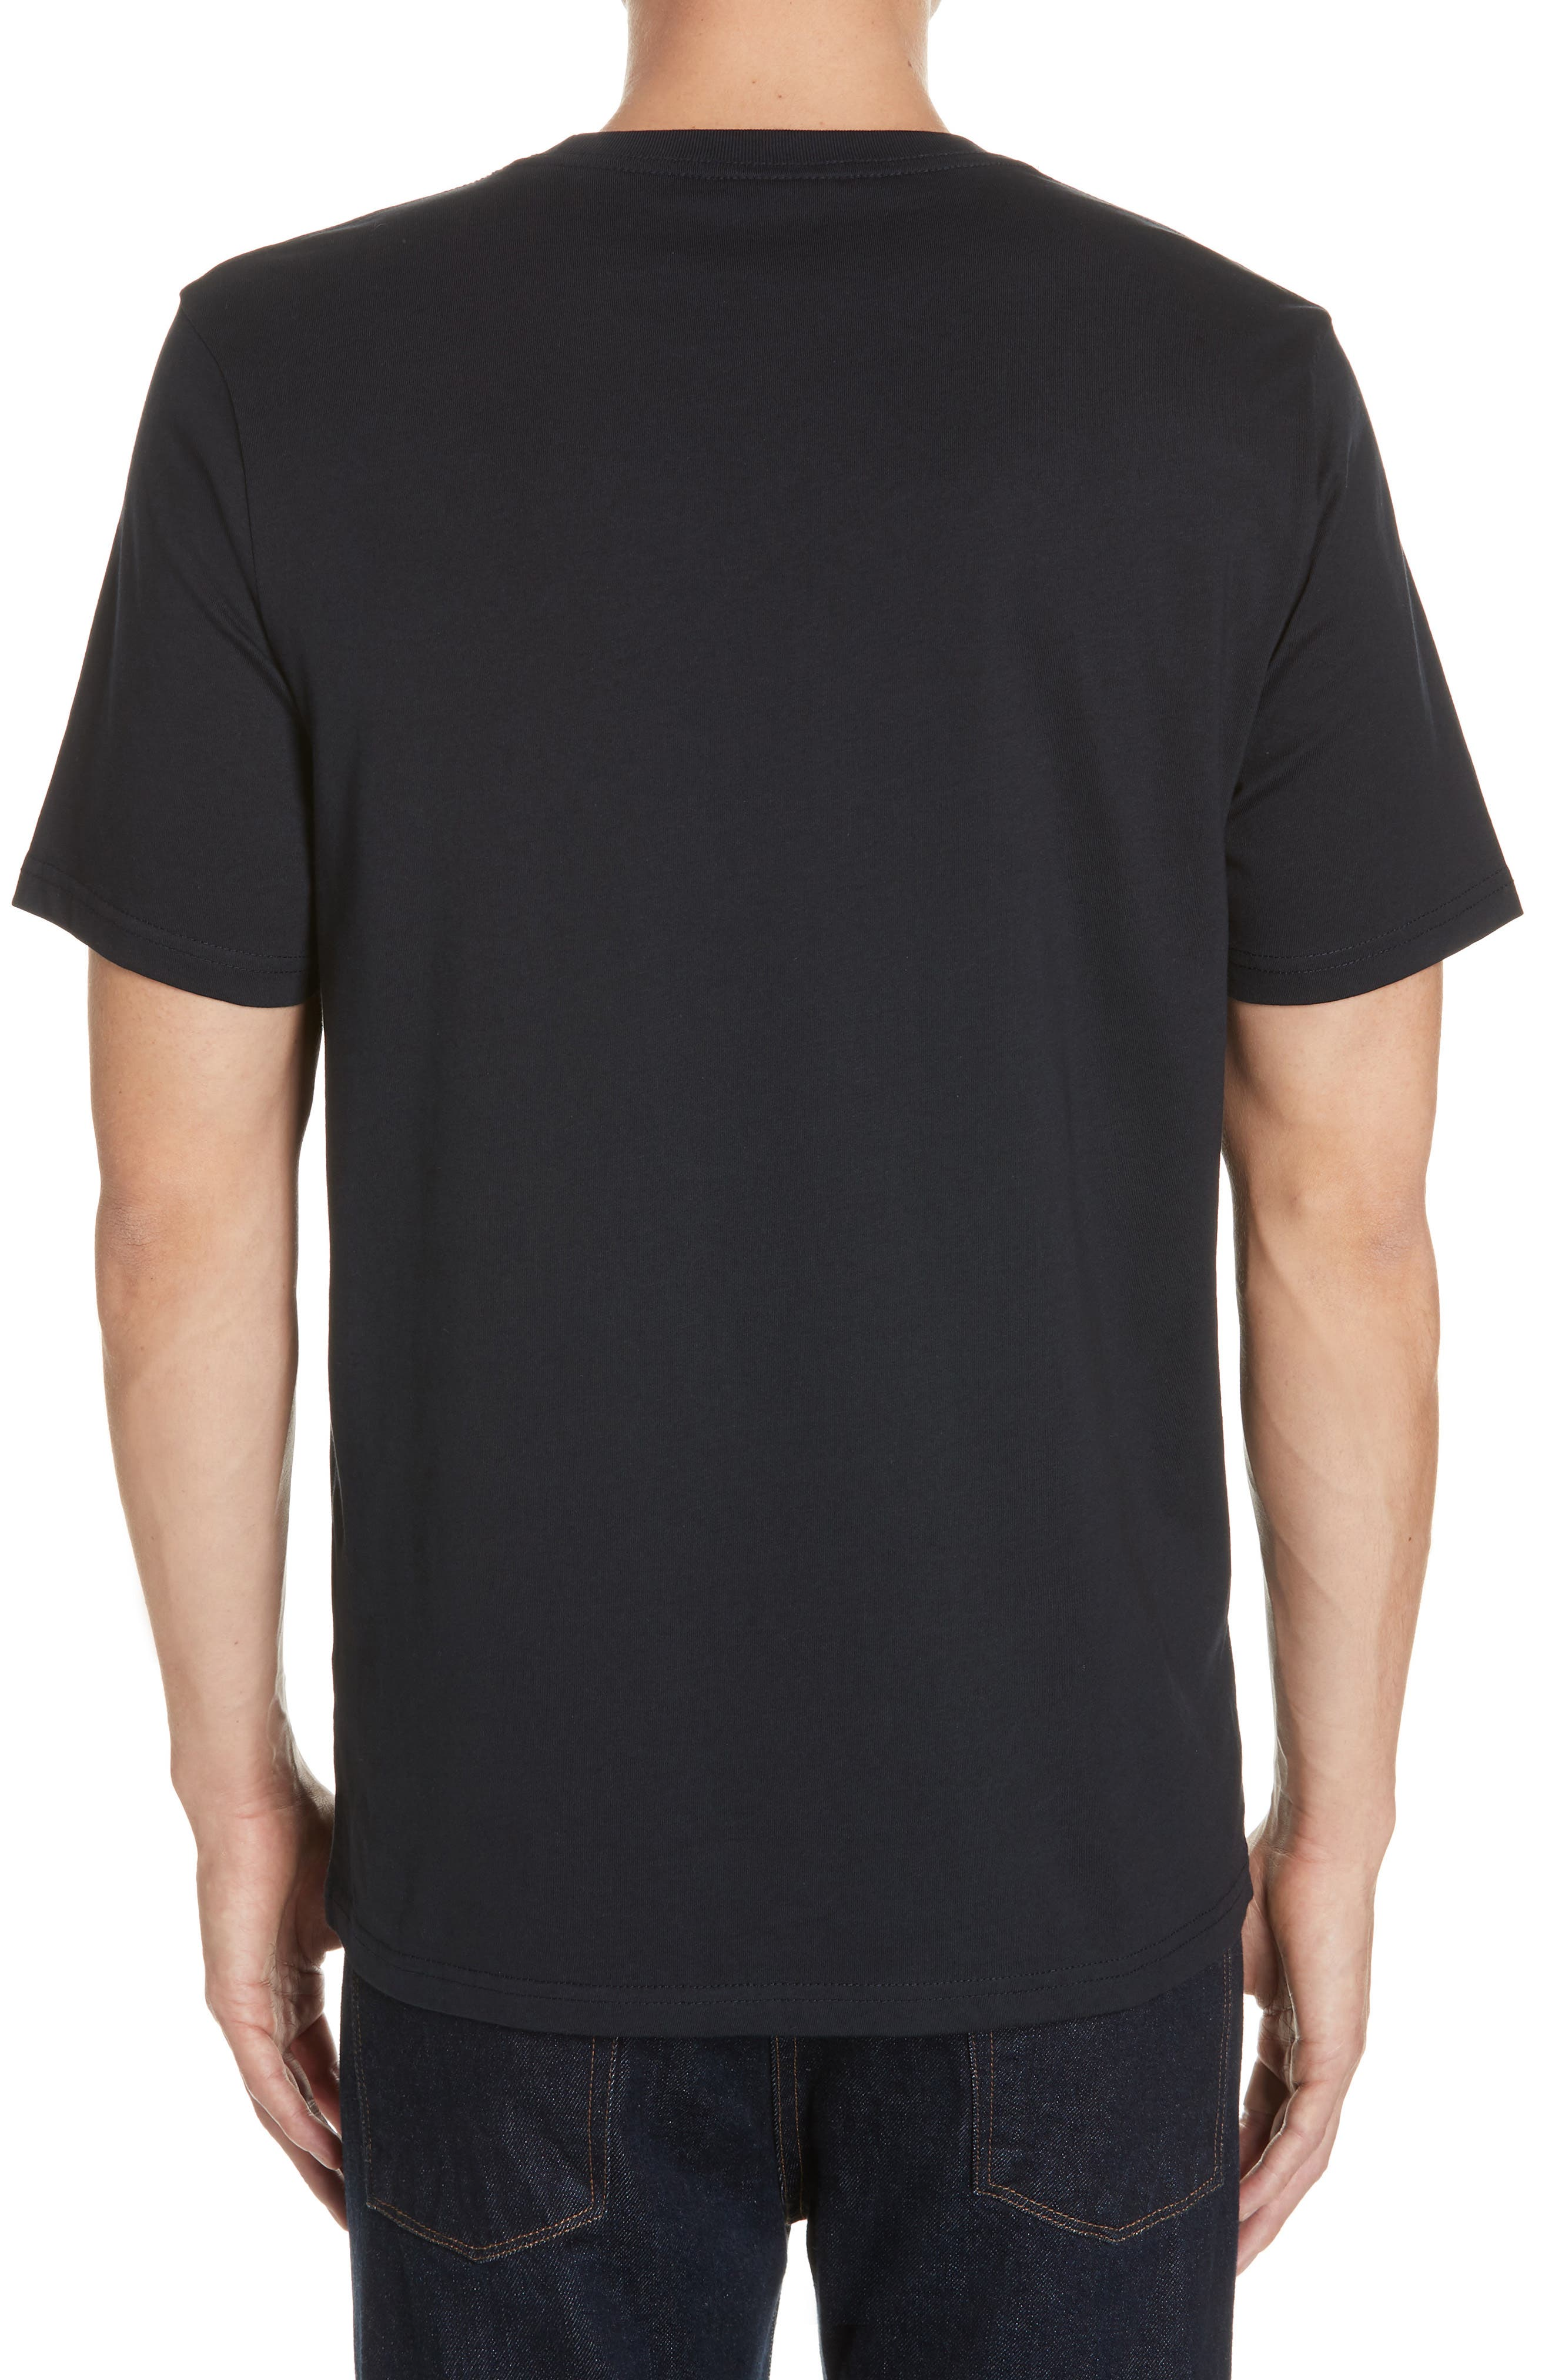 PS PAUL SMITH, Dino Graphic T-Shirt, Alternate thumbnail 2, color, 419